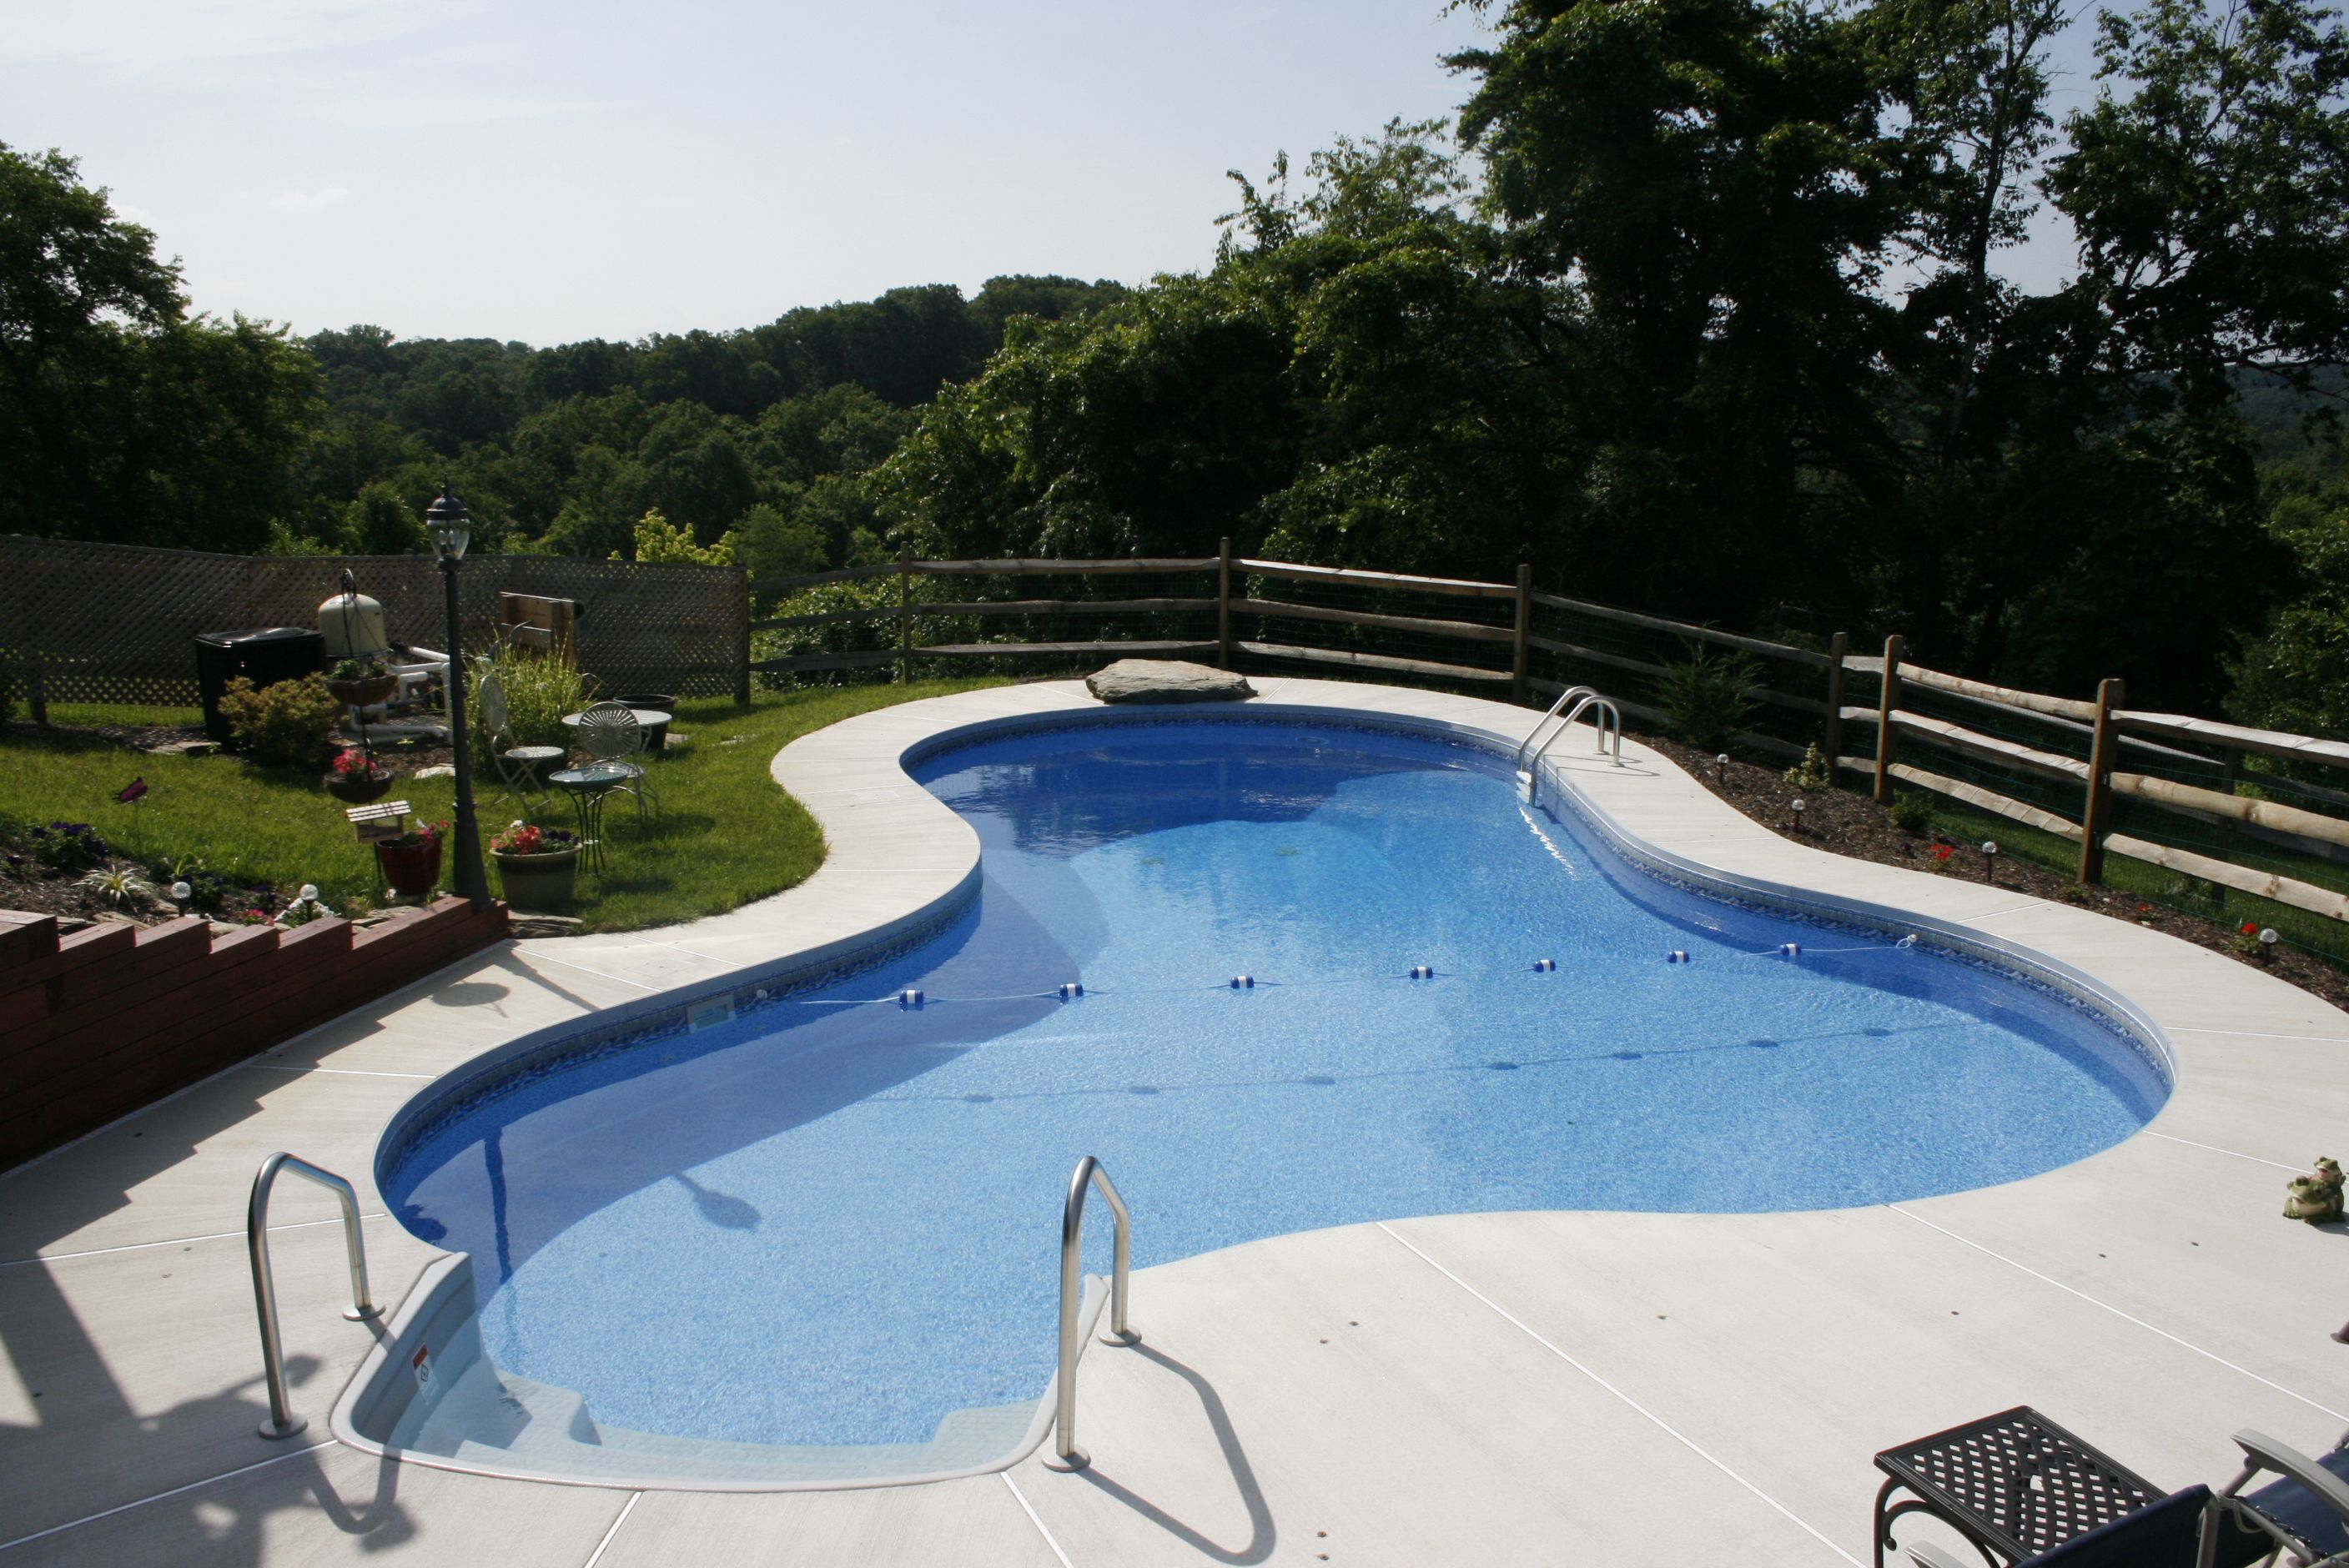 Lagoon style pool featuring brushed concrete deck